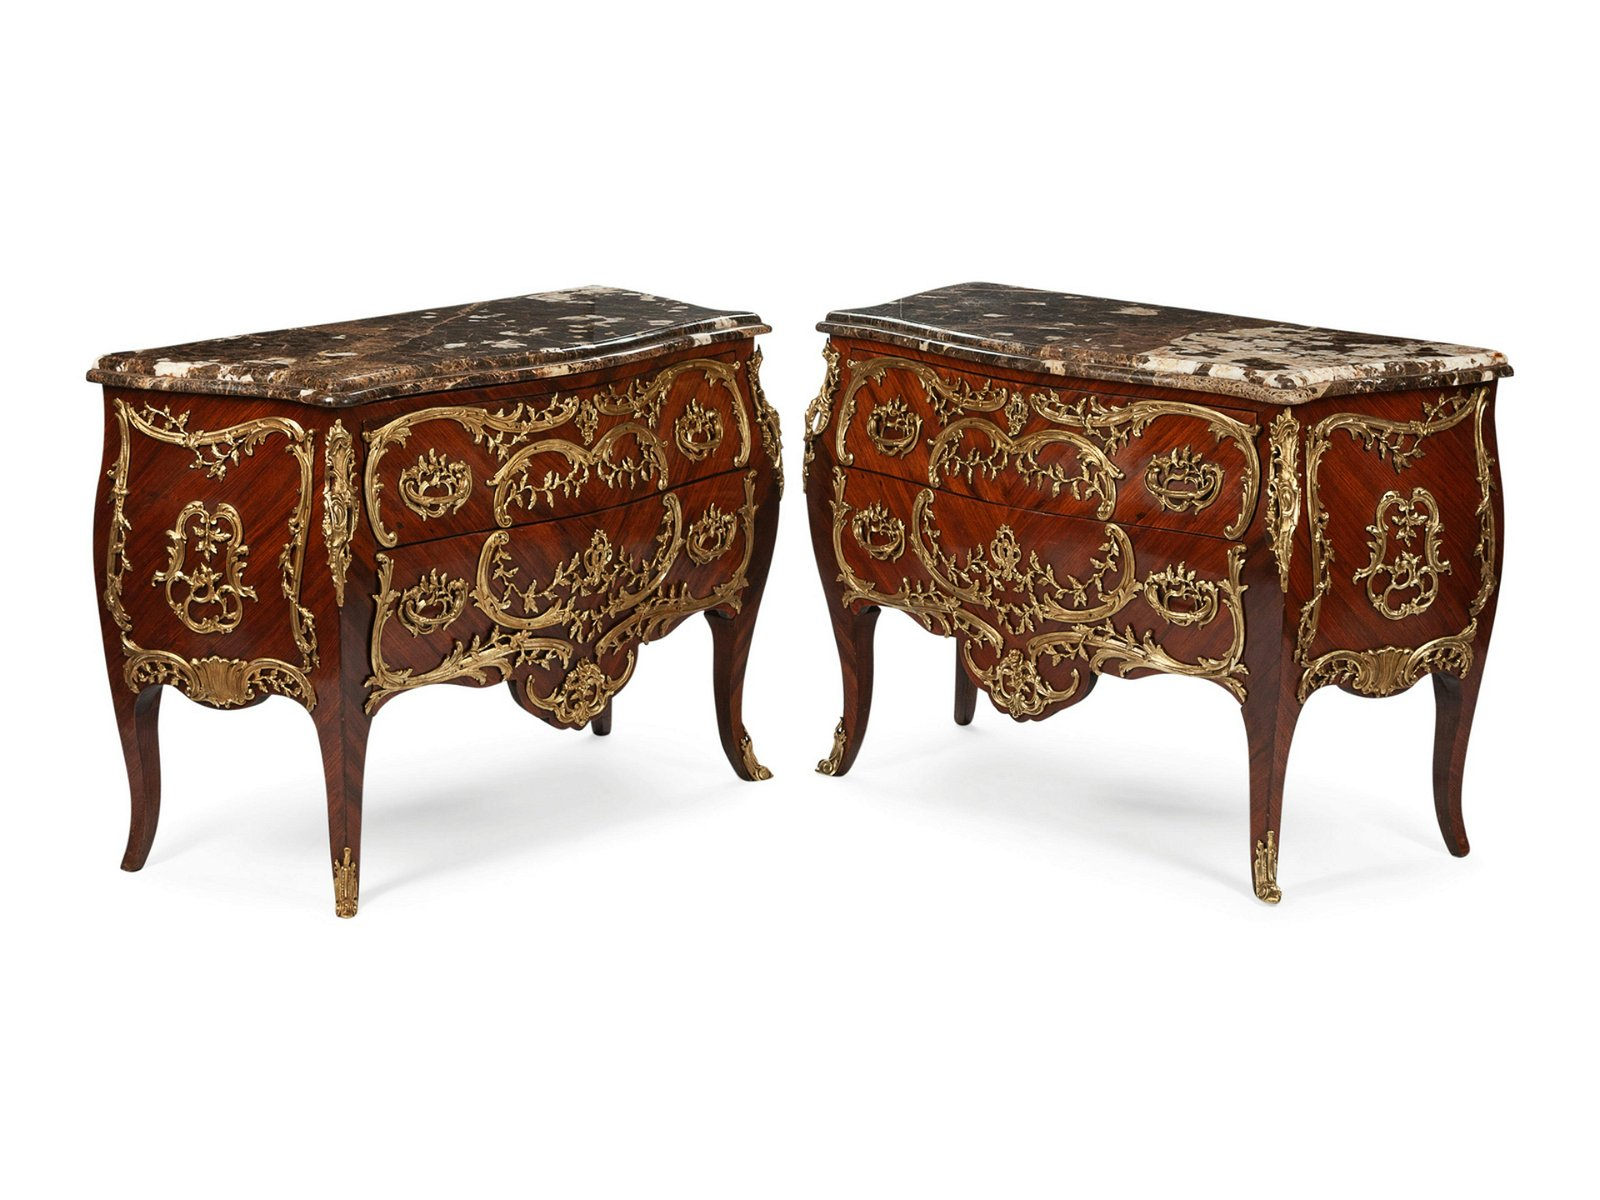 A Pair of Louis XV Style Gilt Bronze Mounted Commodes